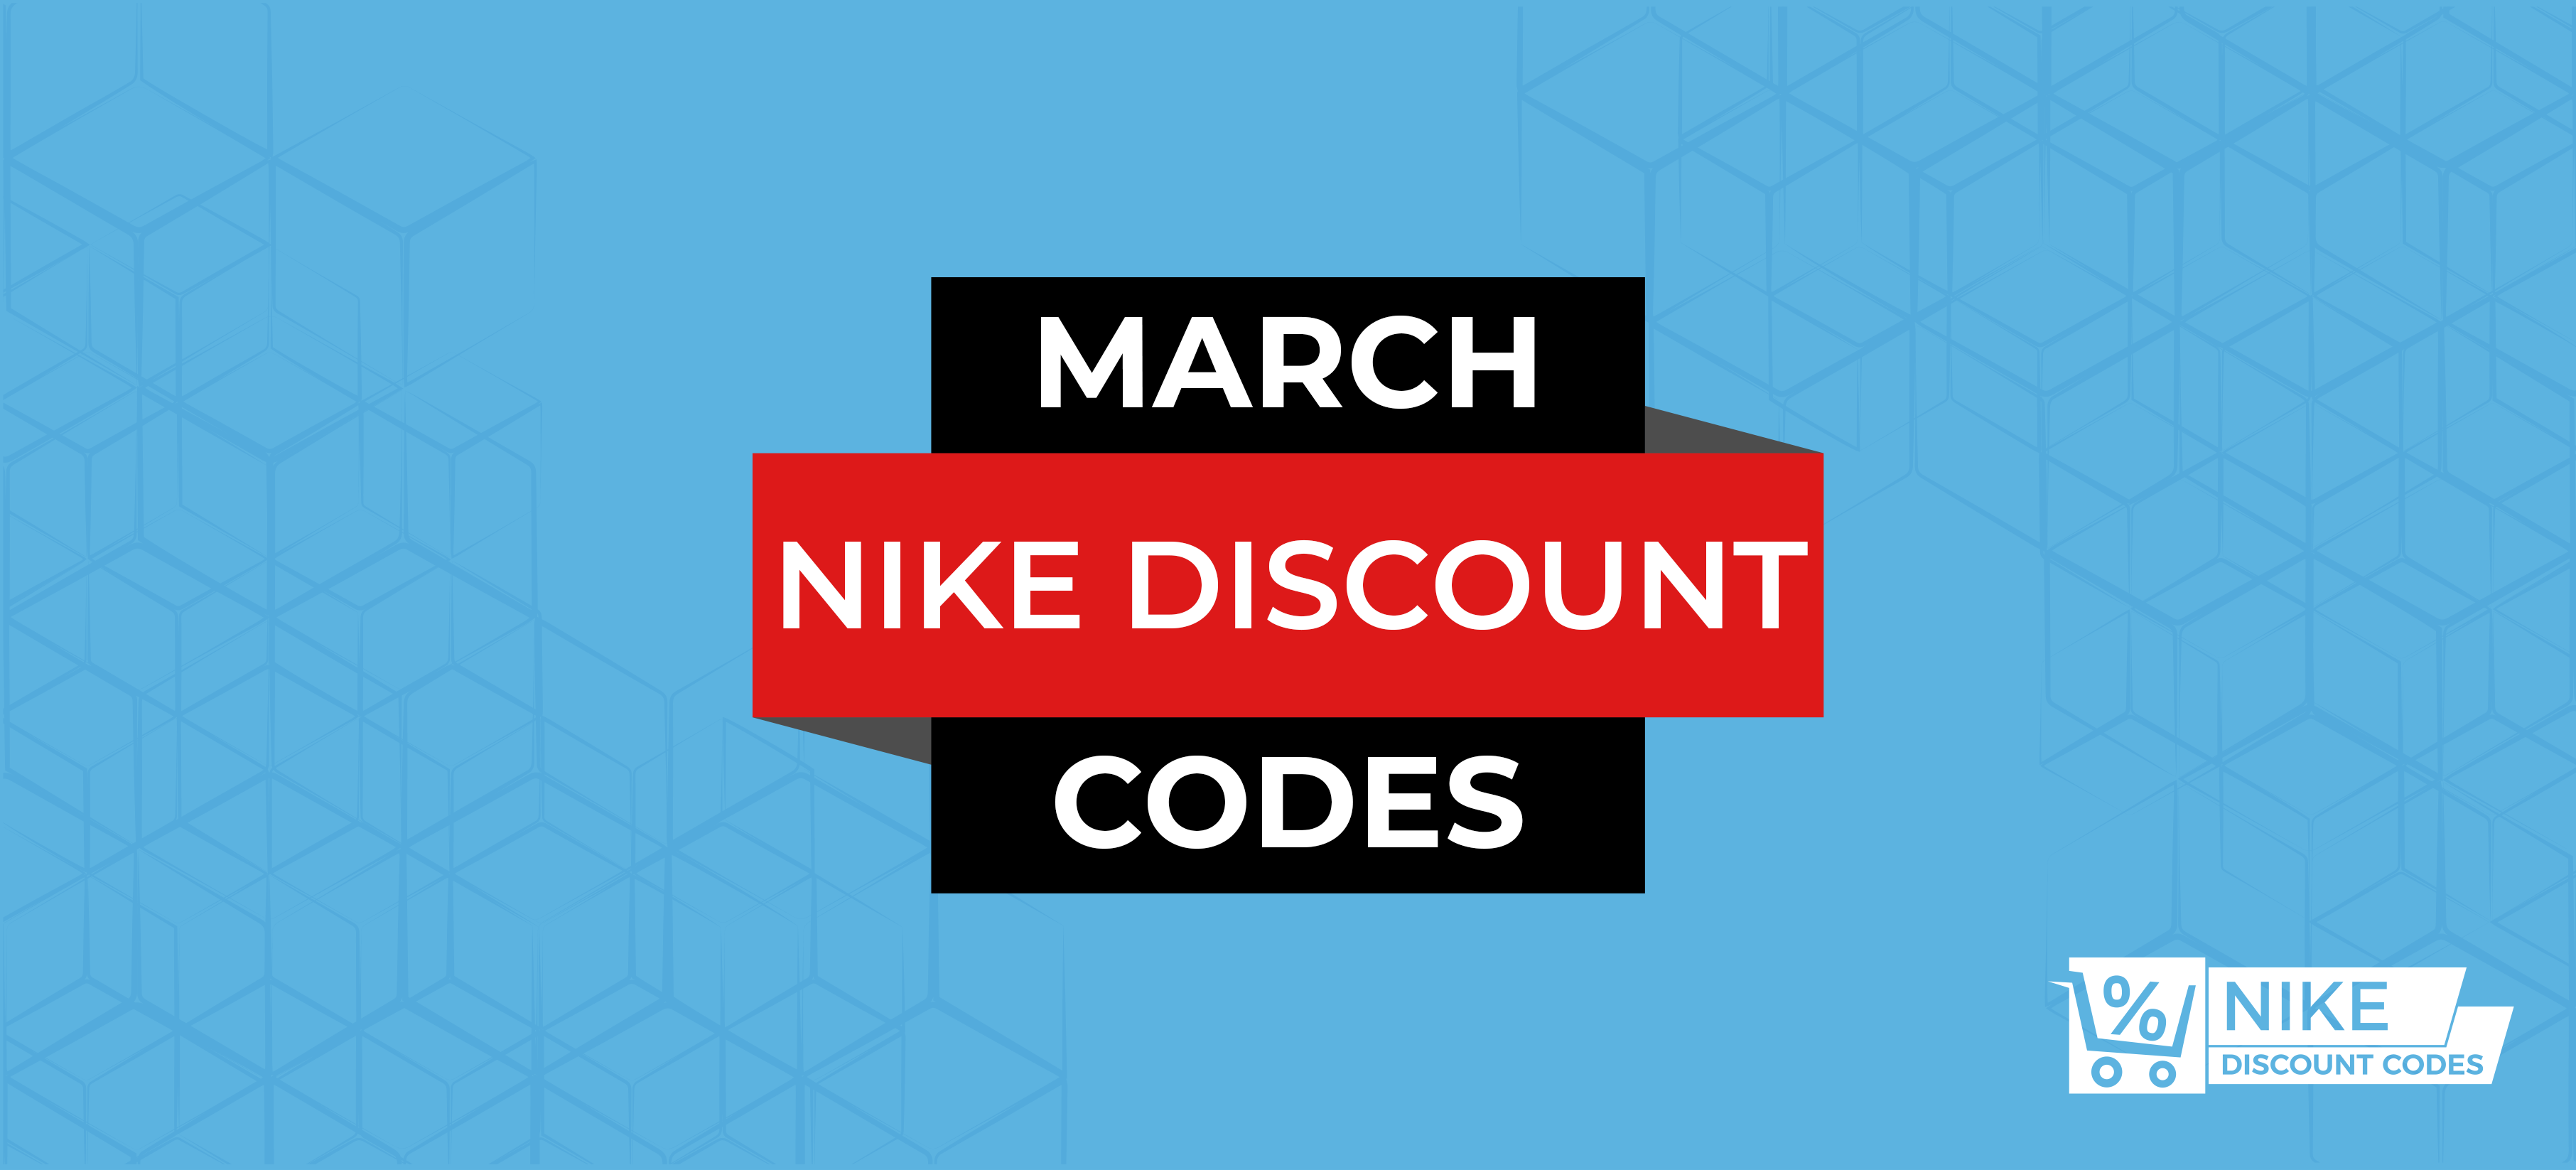 March Discount Codes Banner